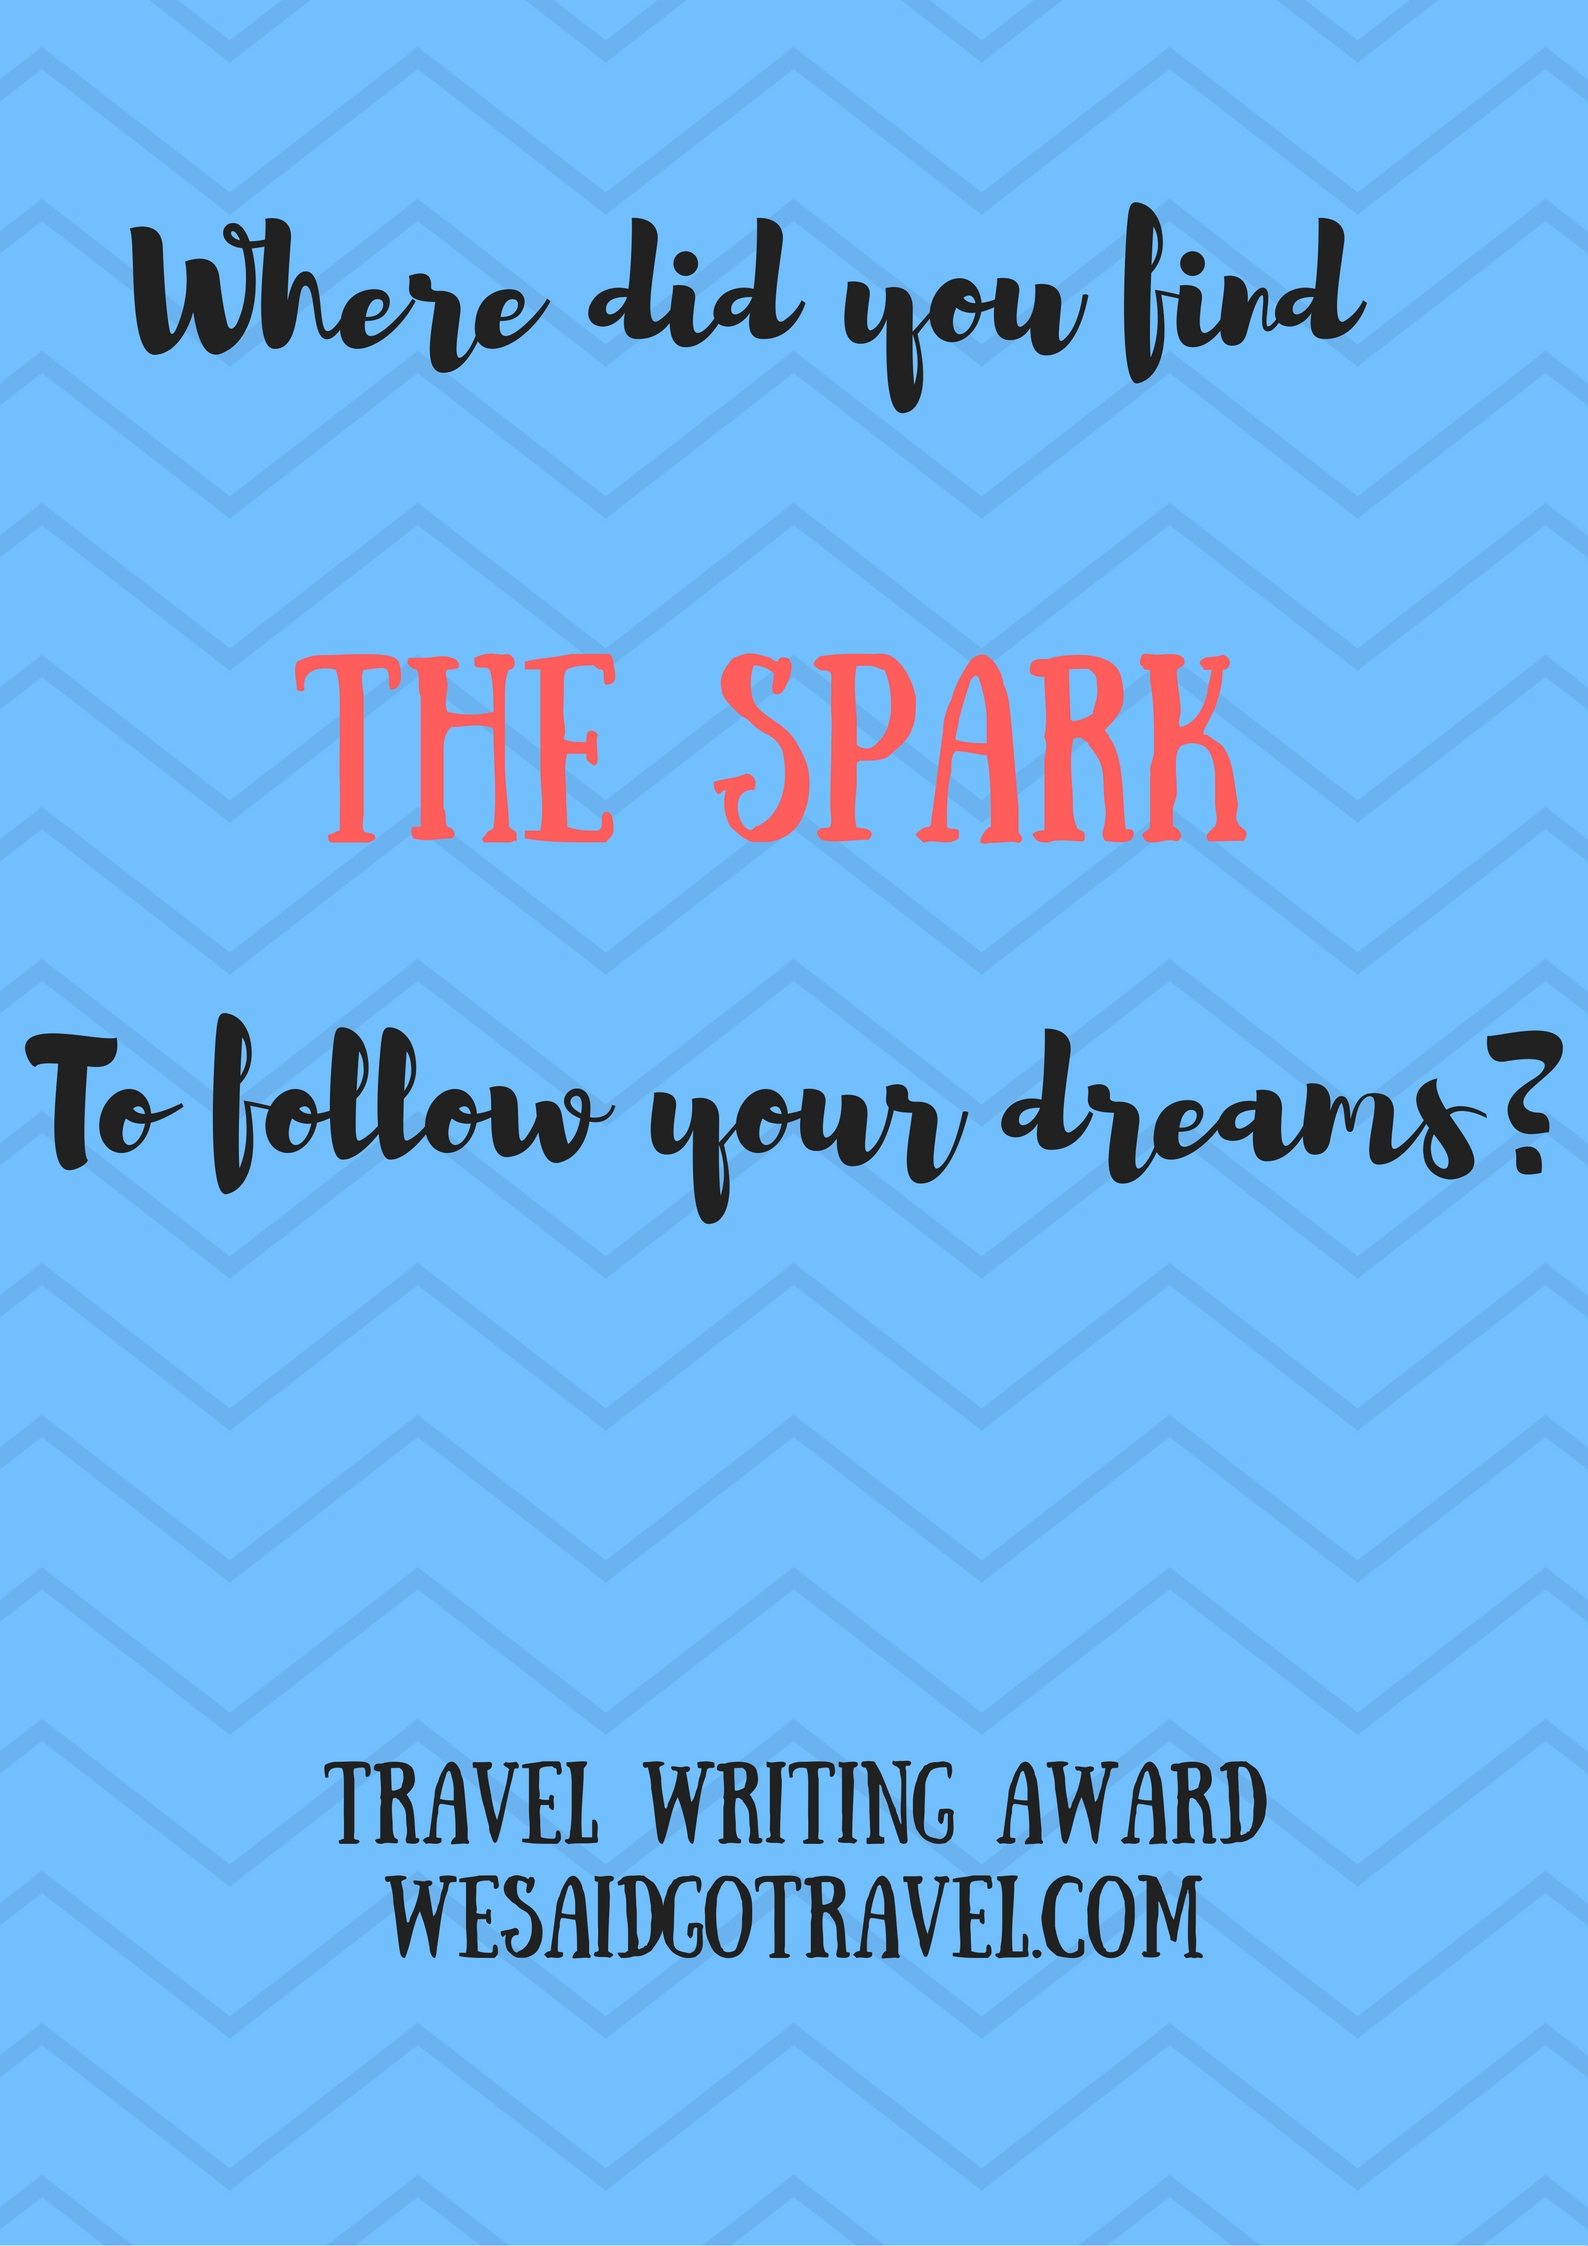 Gratitude Travel Writing Award is waiting for your stories